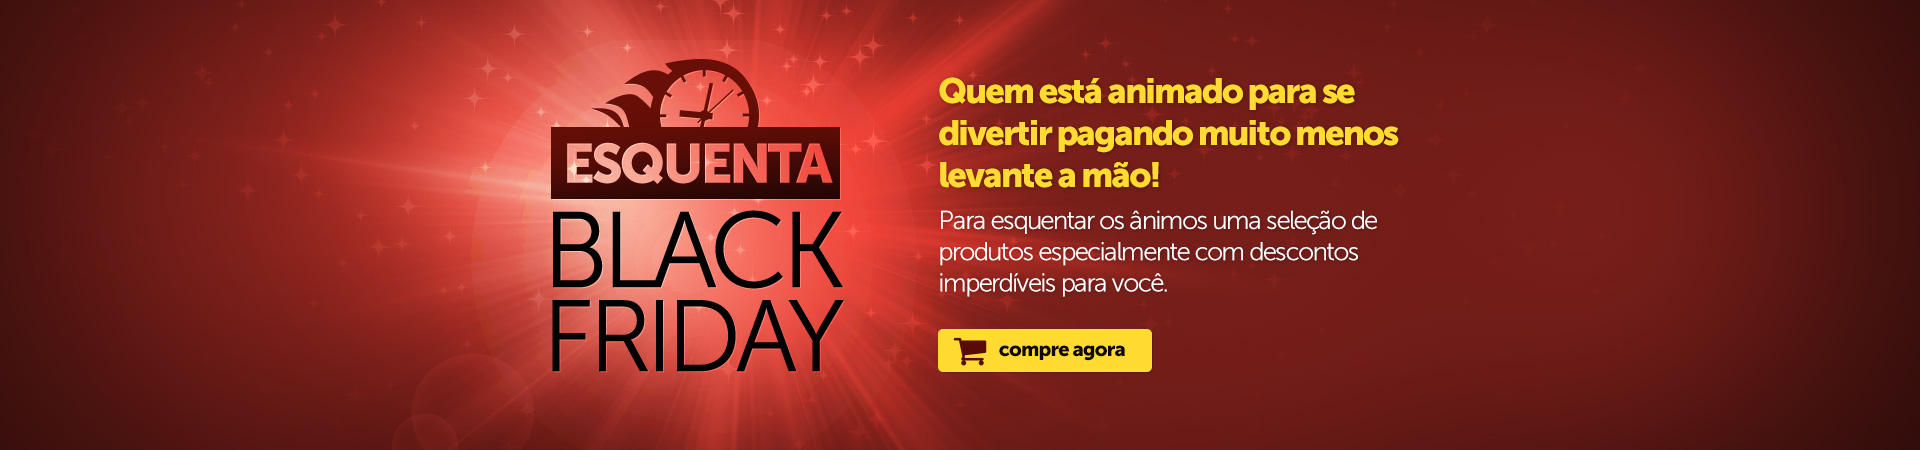 Esquenta BlackFriday